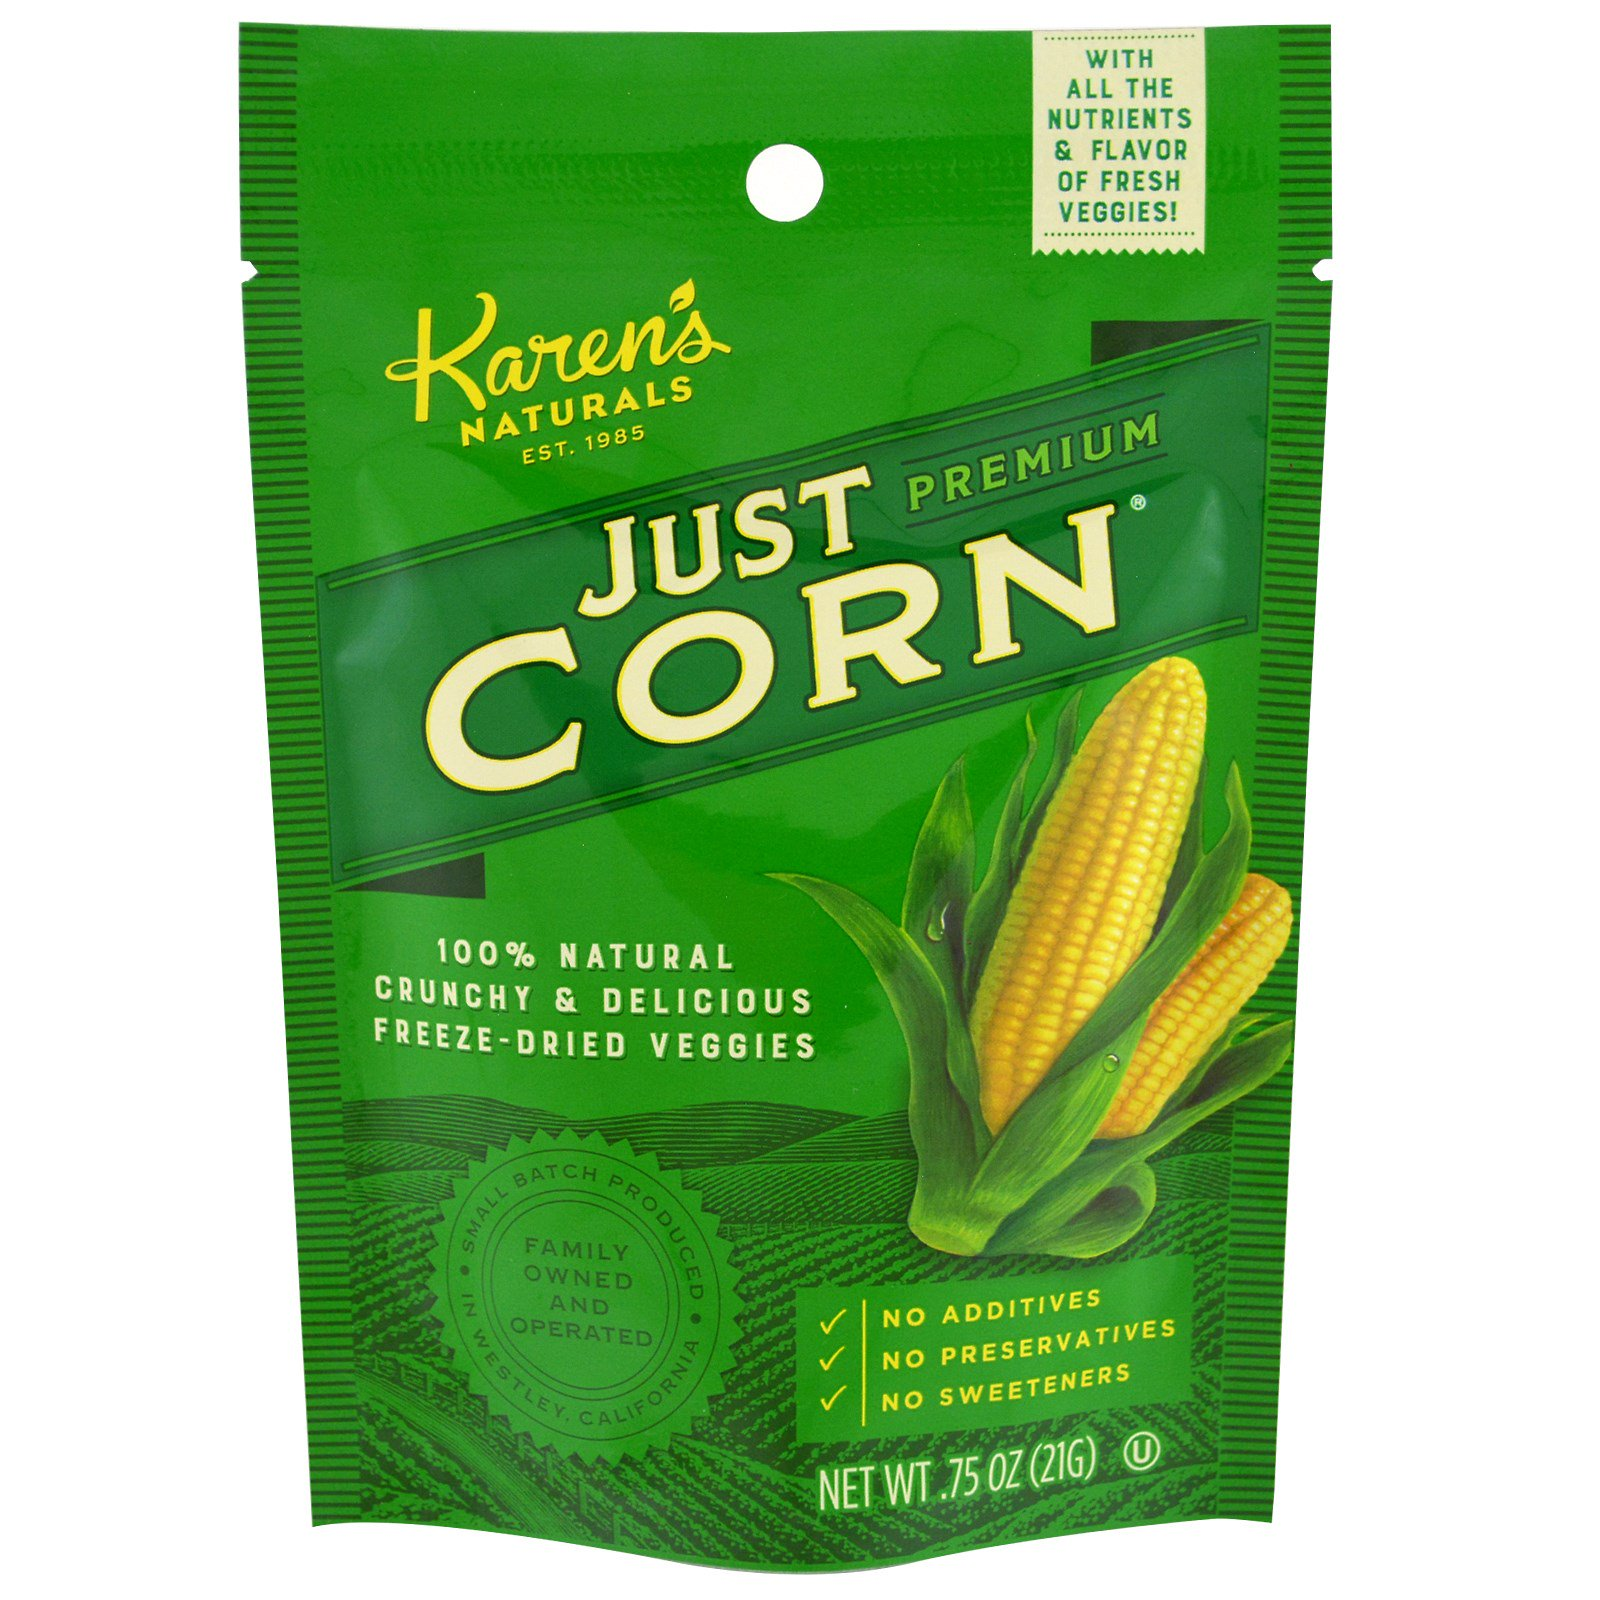 Karen's Naturals, Just Corn, Snack Bag, .75 oz (21 g)